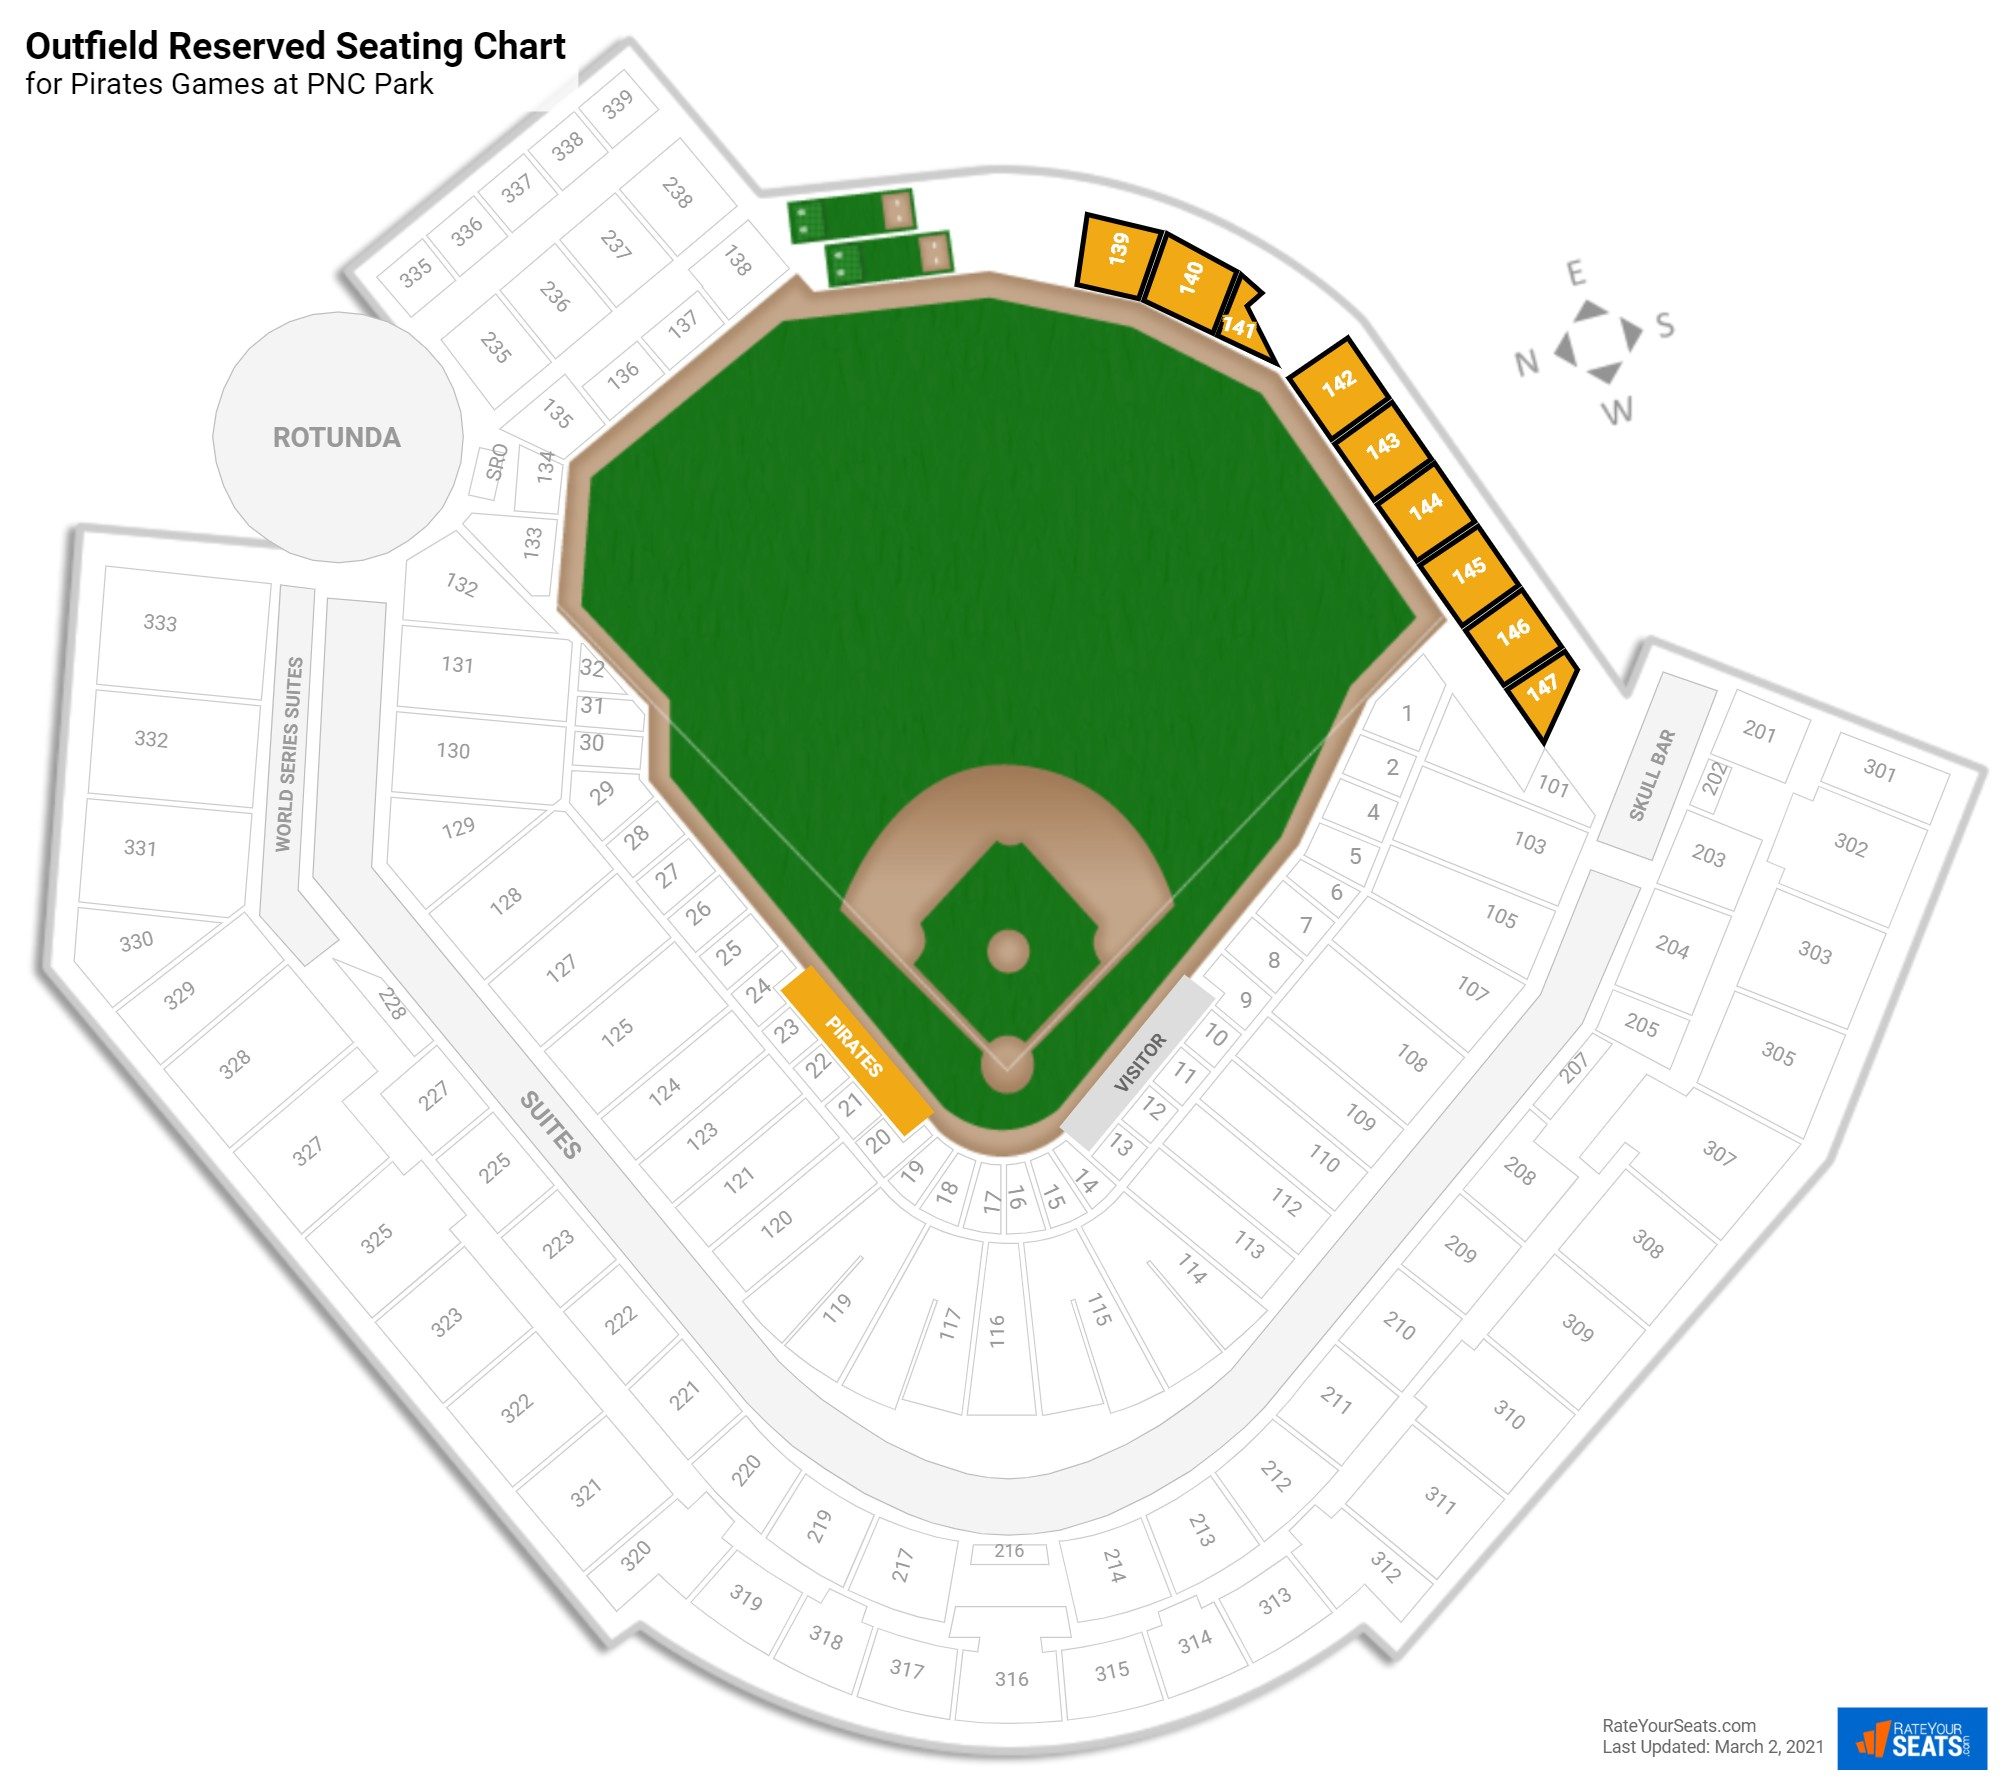 PNC Park Outfield Reserved seating chart